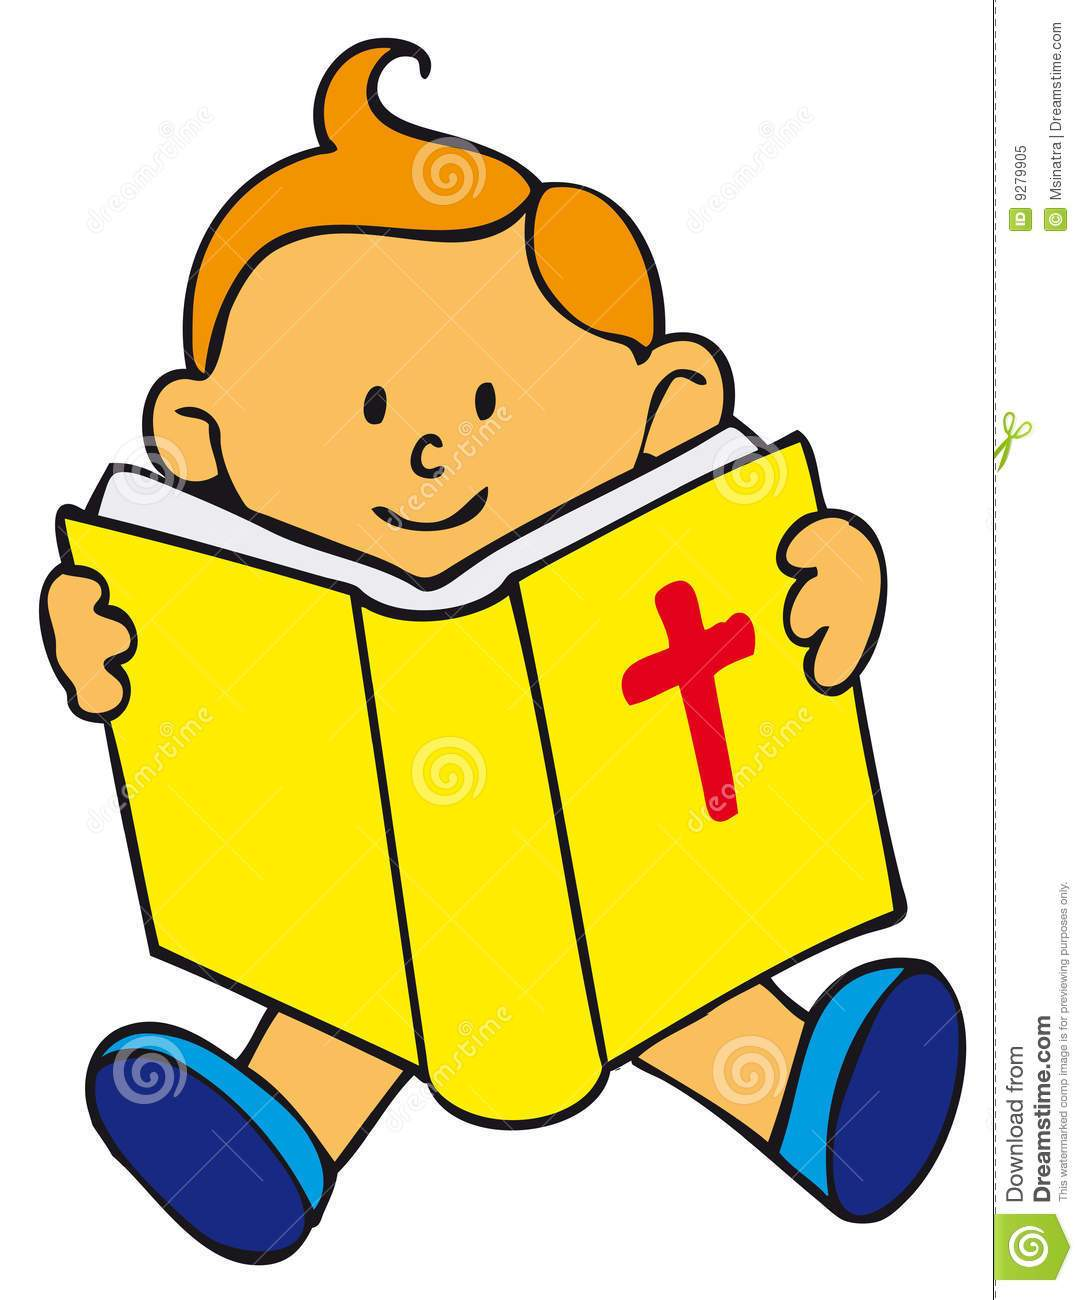 Bible clipart for kids